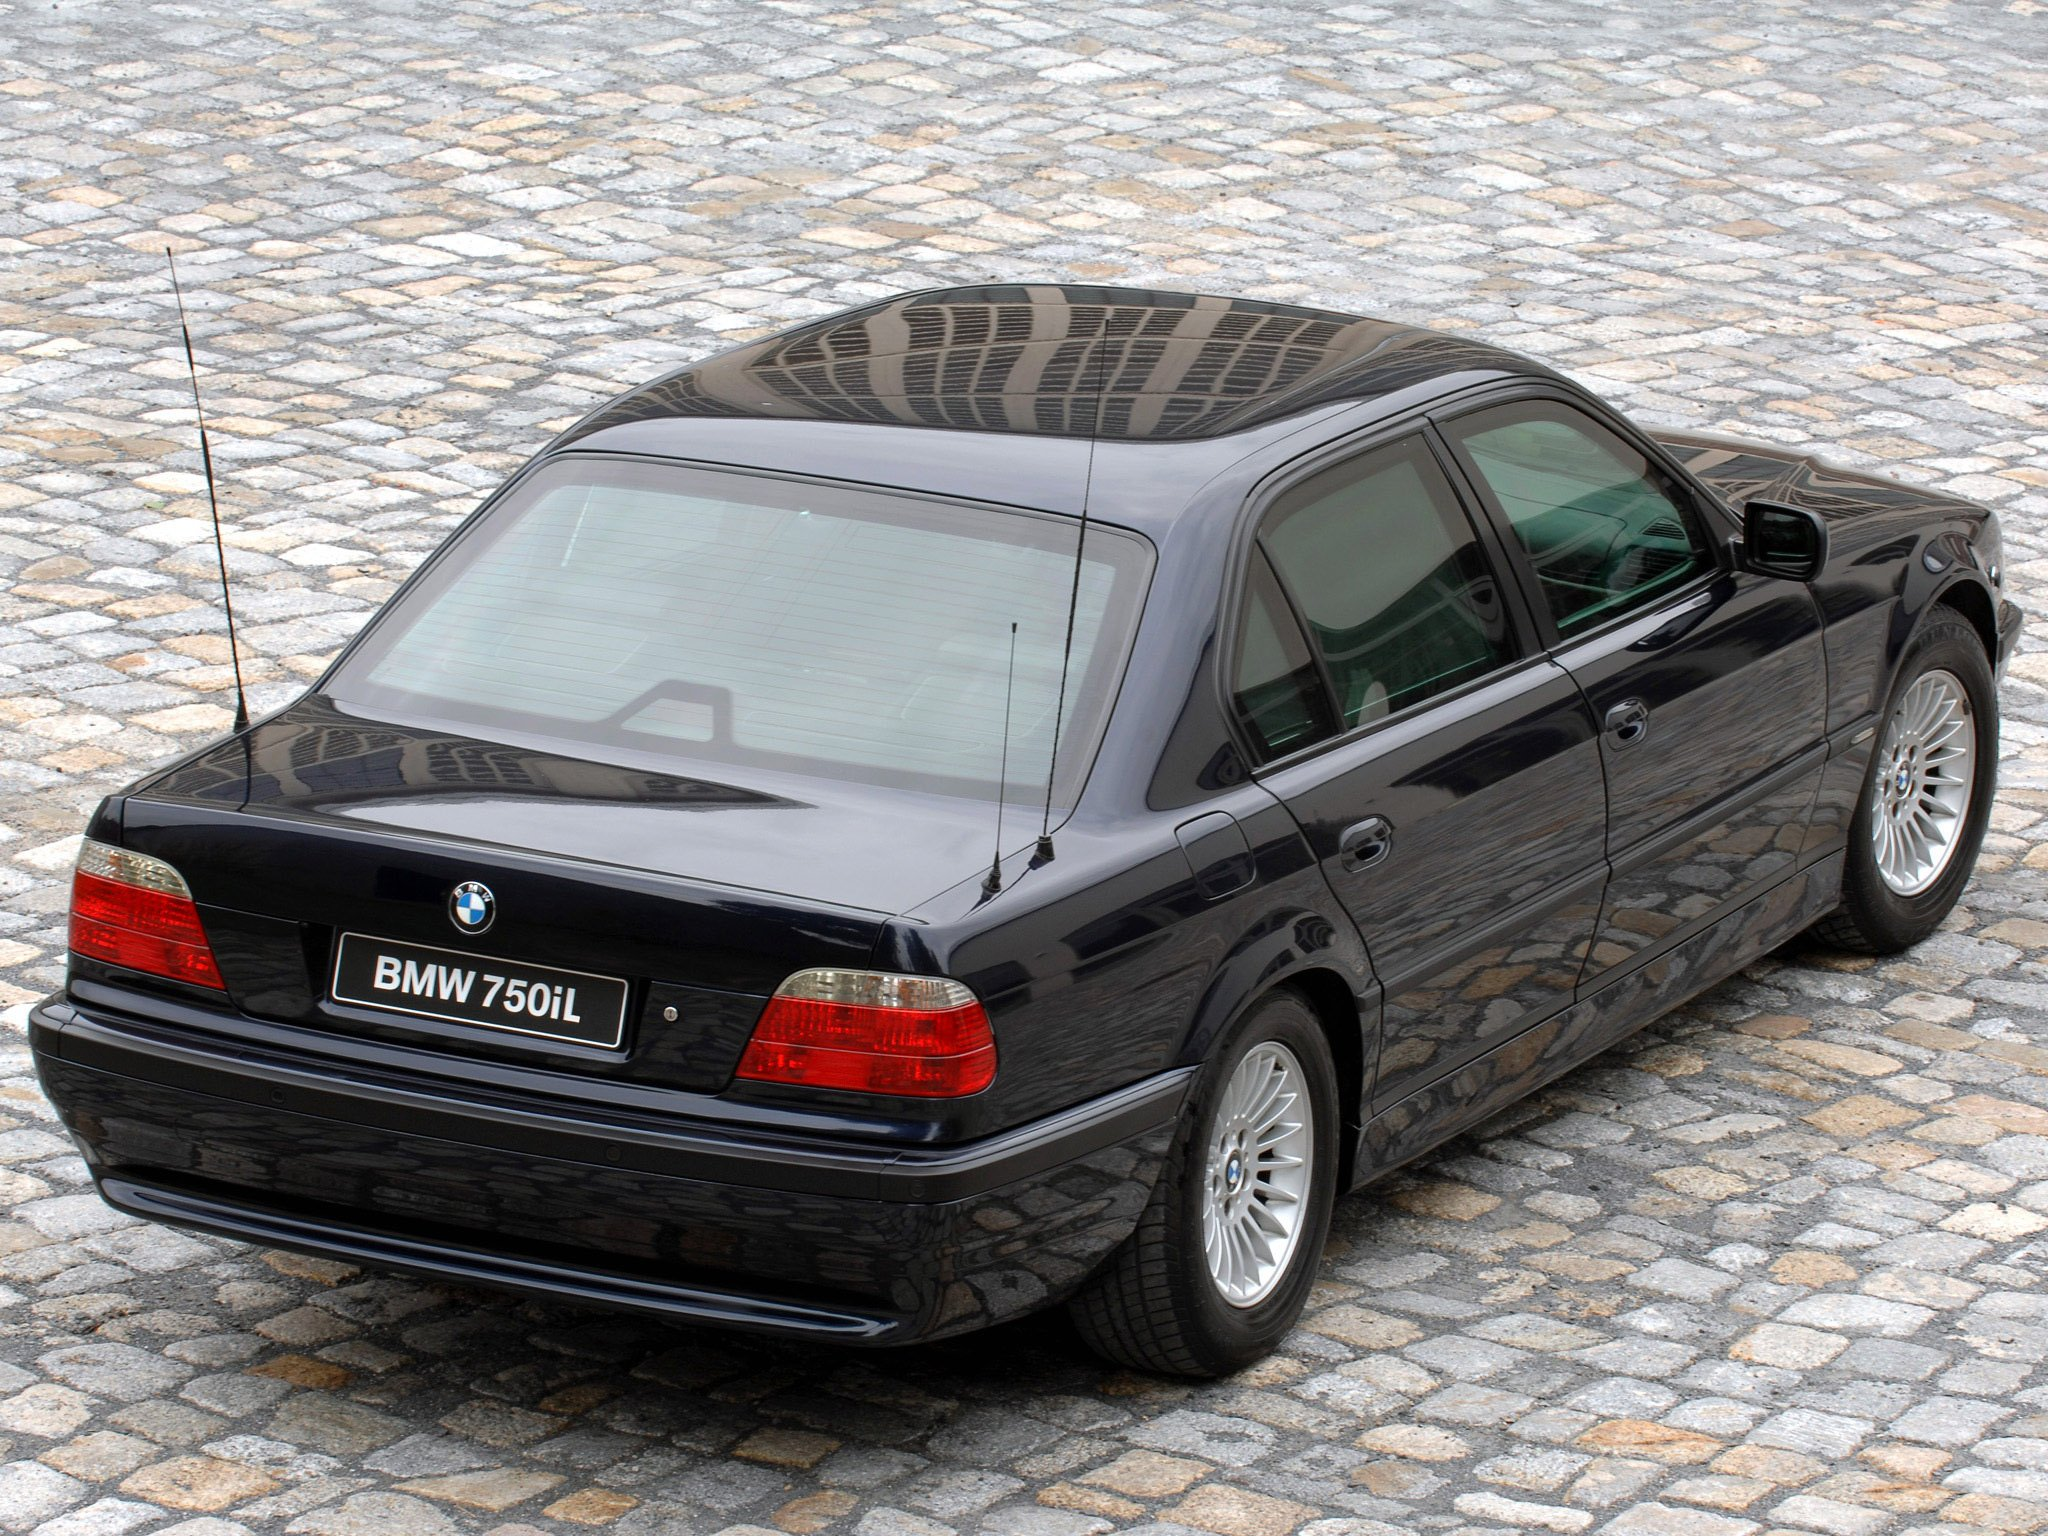 bmw 7er (e38) 1998 pictures #6